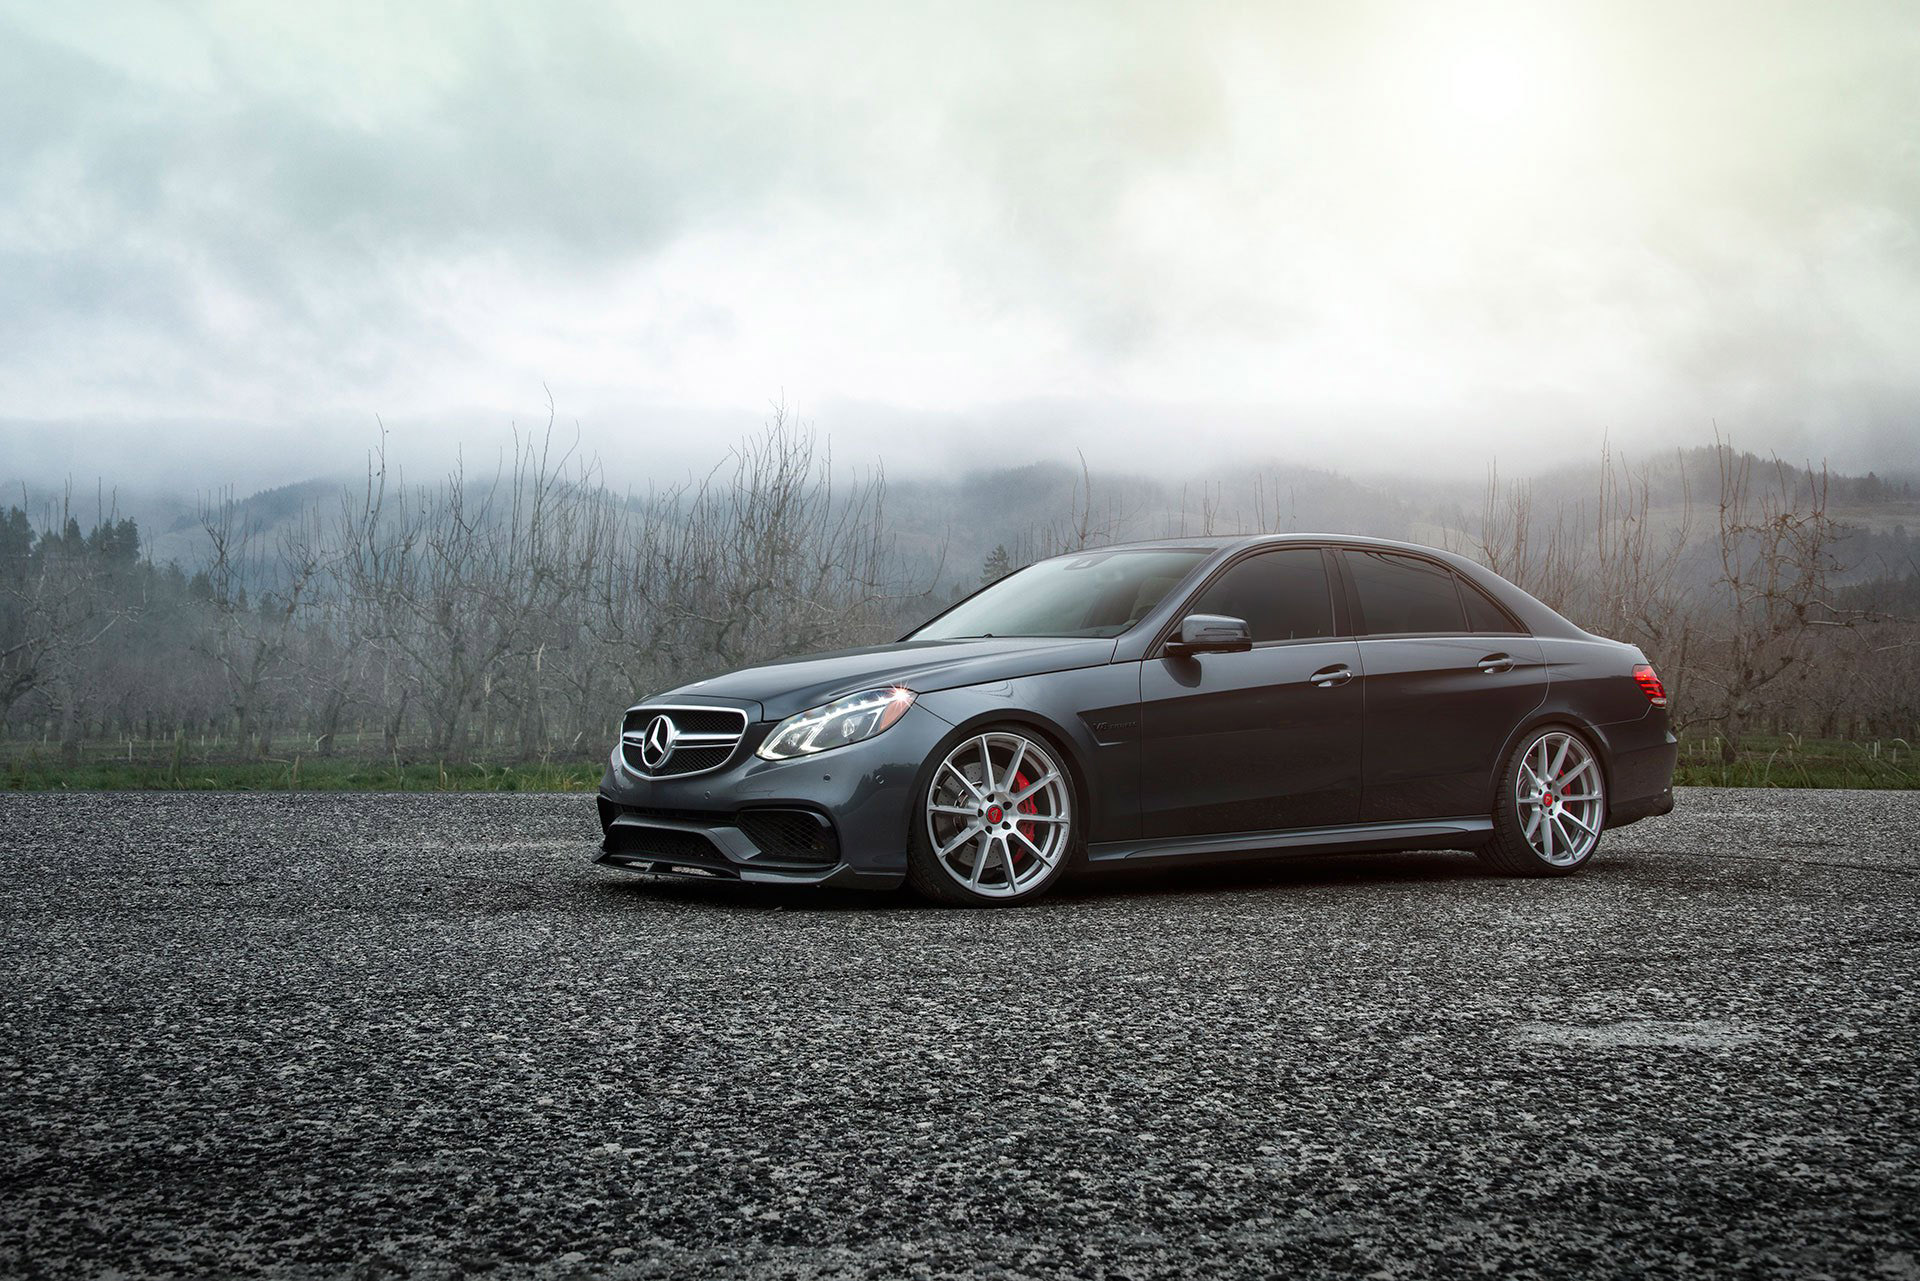 Vorsteiner mercedes benz e63 amg with aero kit for Mercedes benz amg kit